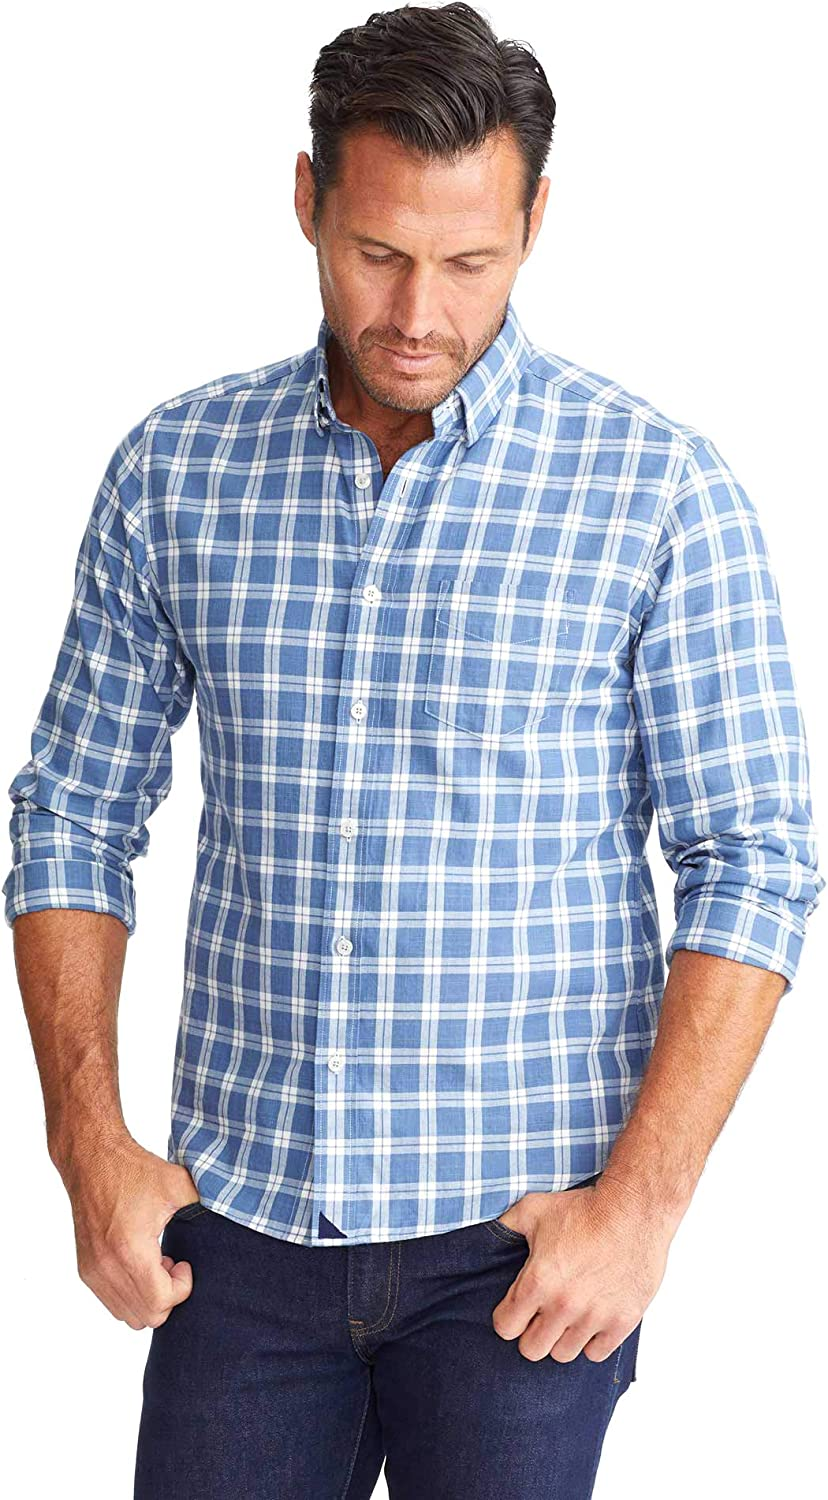 UNTUCKit Carmenet - Untucked Shirt for Men Blue Plaid Max 53% Direct store OFF Sle Long